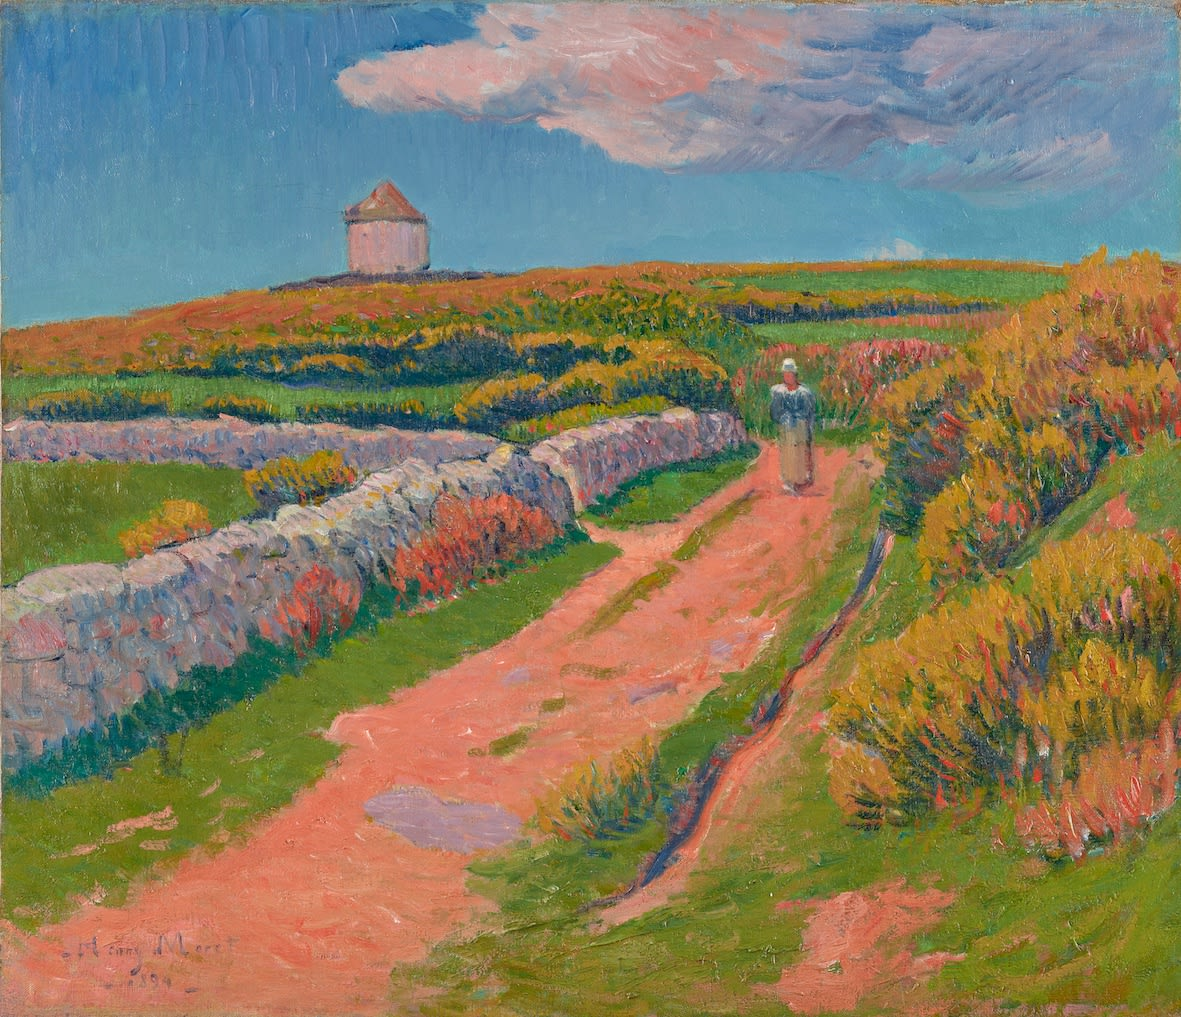 "<span class=""link fancybox-details-link""><a href=""/exhibitions/14/works/artworks_standalone9411/"">View Detail Page</a></span><div class=""signed_and_dated"">Signed and dated lower left Henry Moret 1894</div>